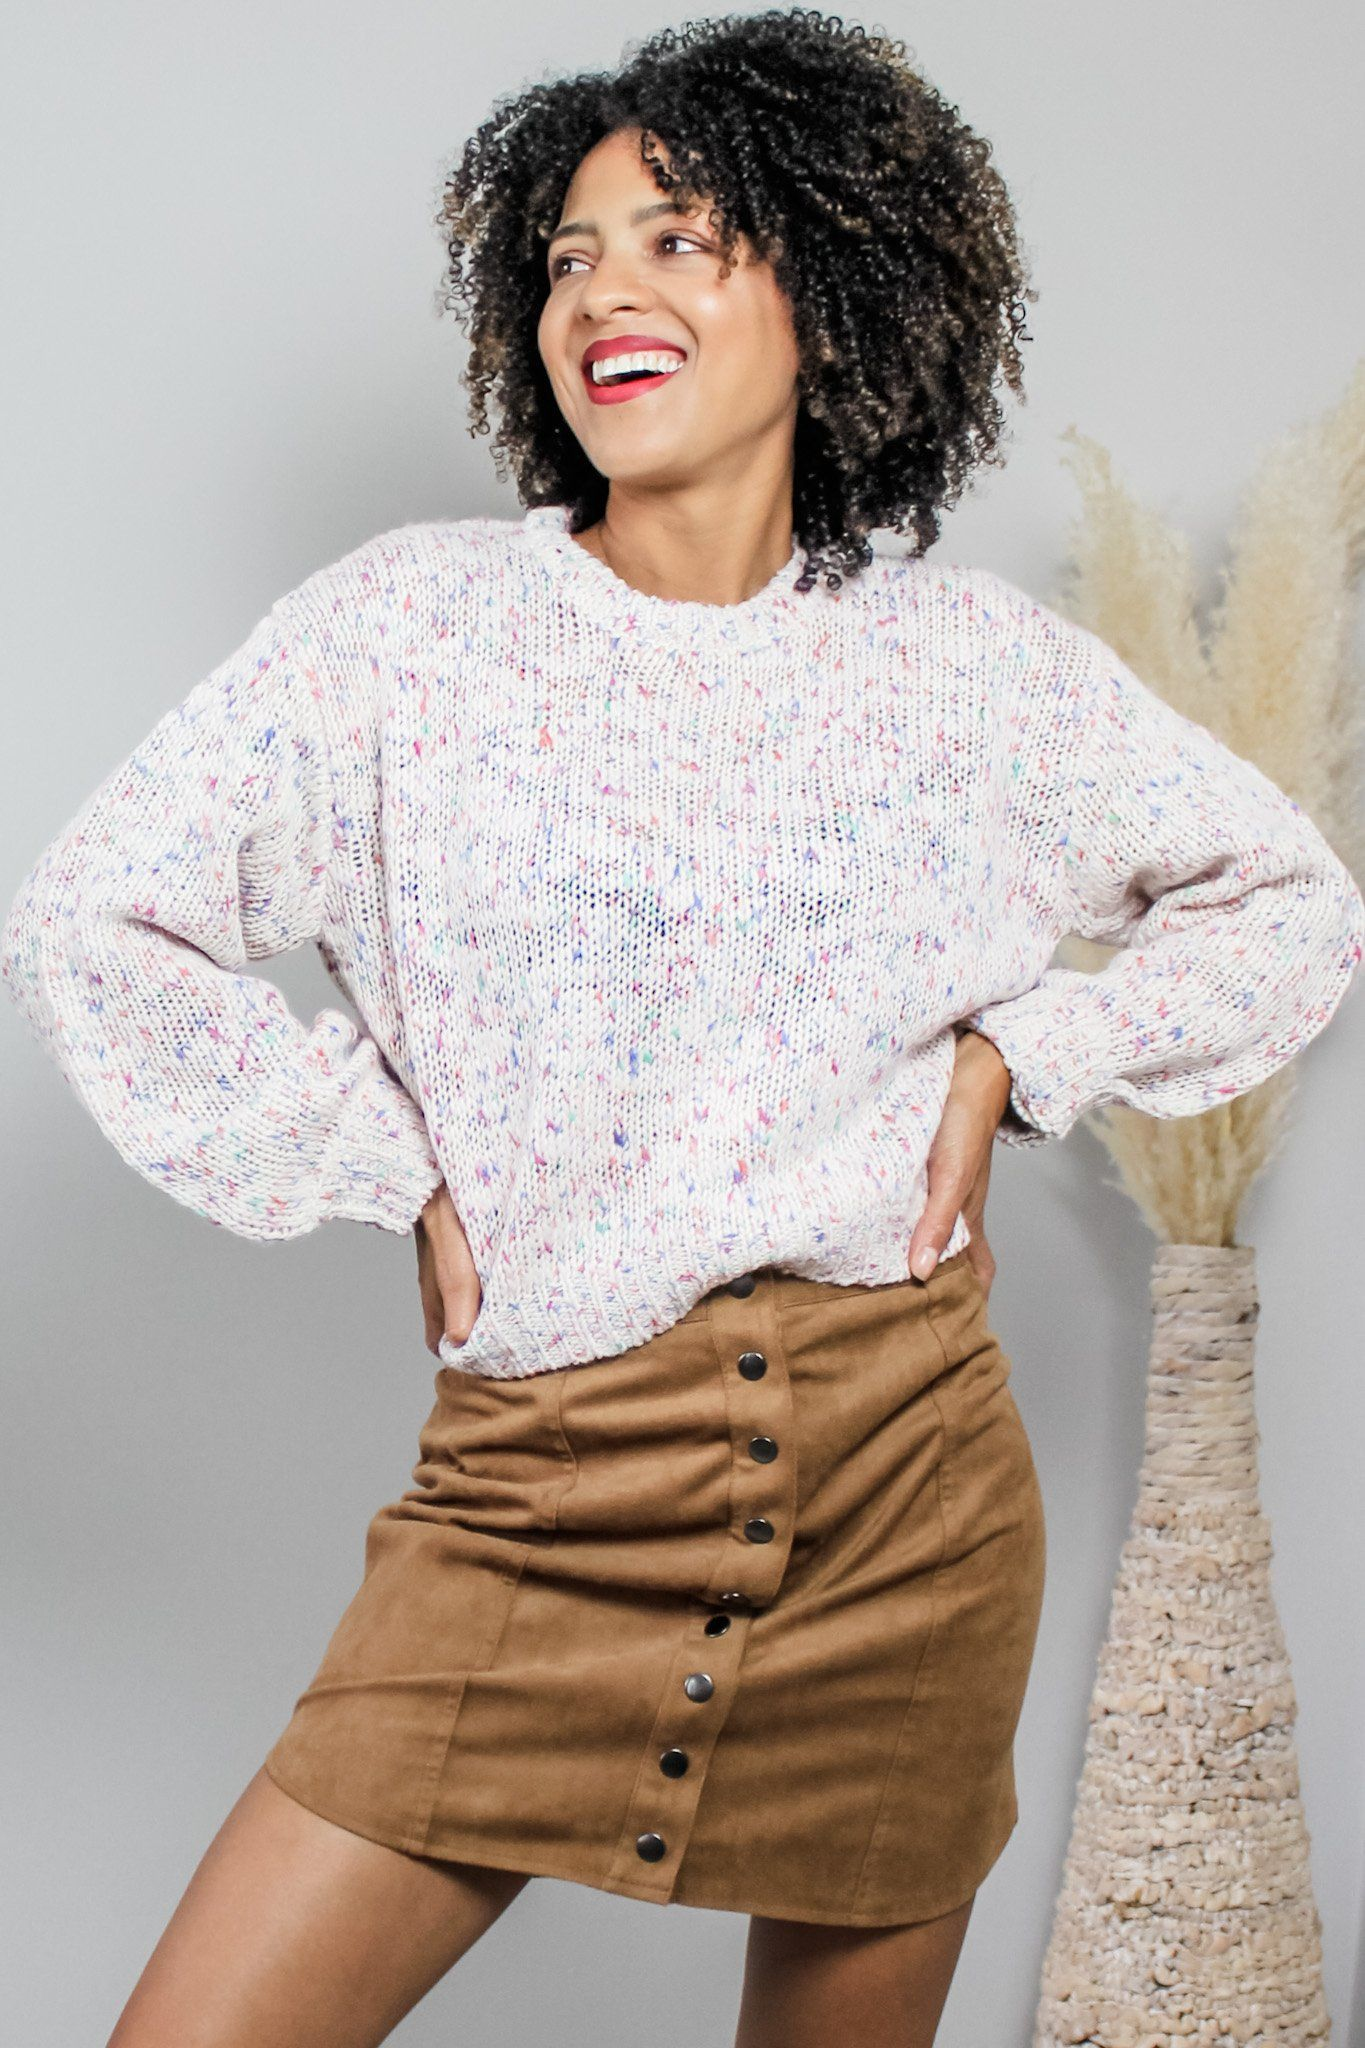 DN knitted multicolour sweater | Fashion, Sweaters, Knitted